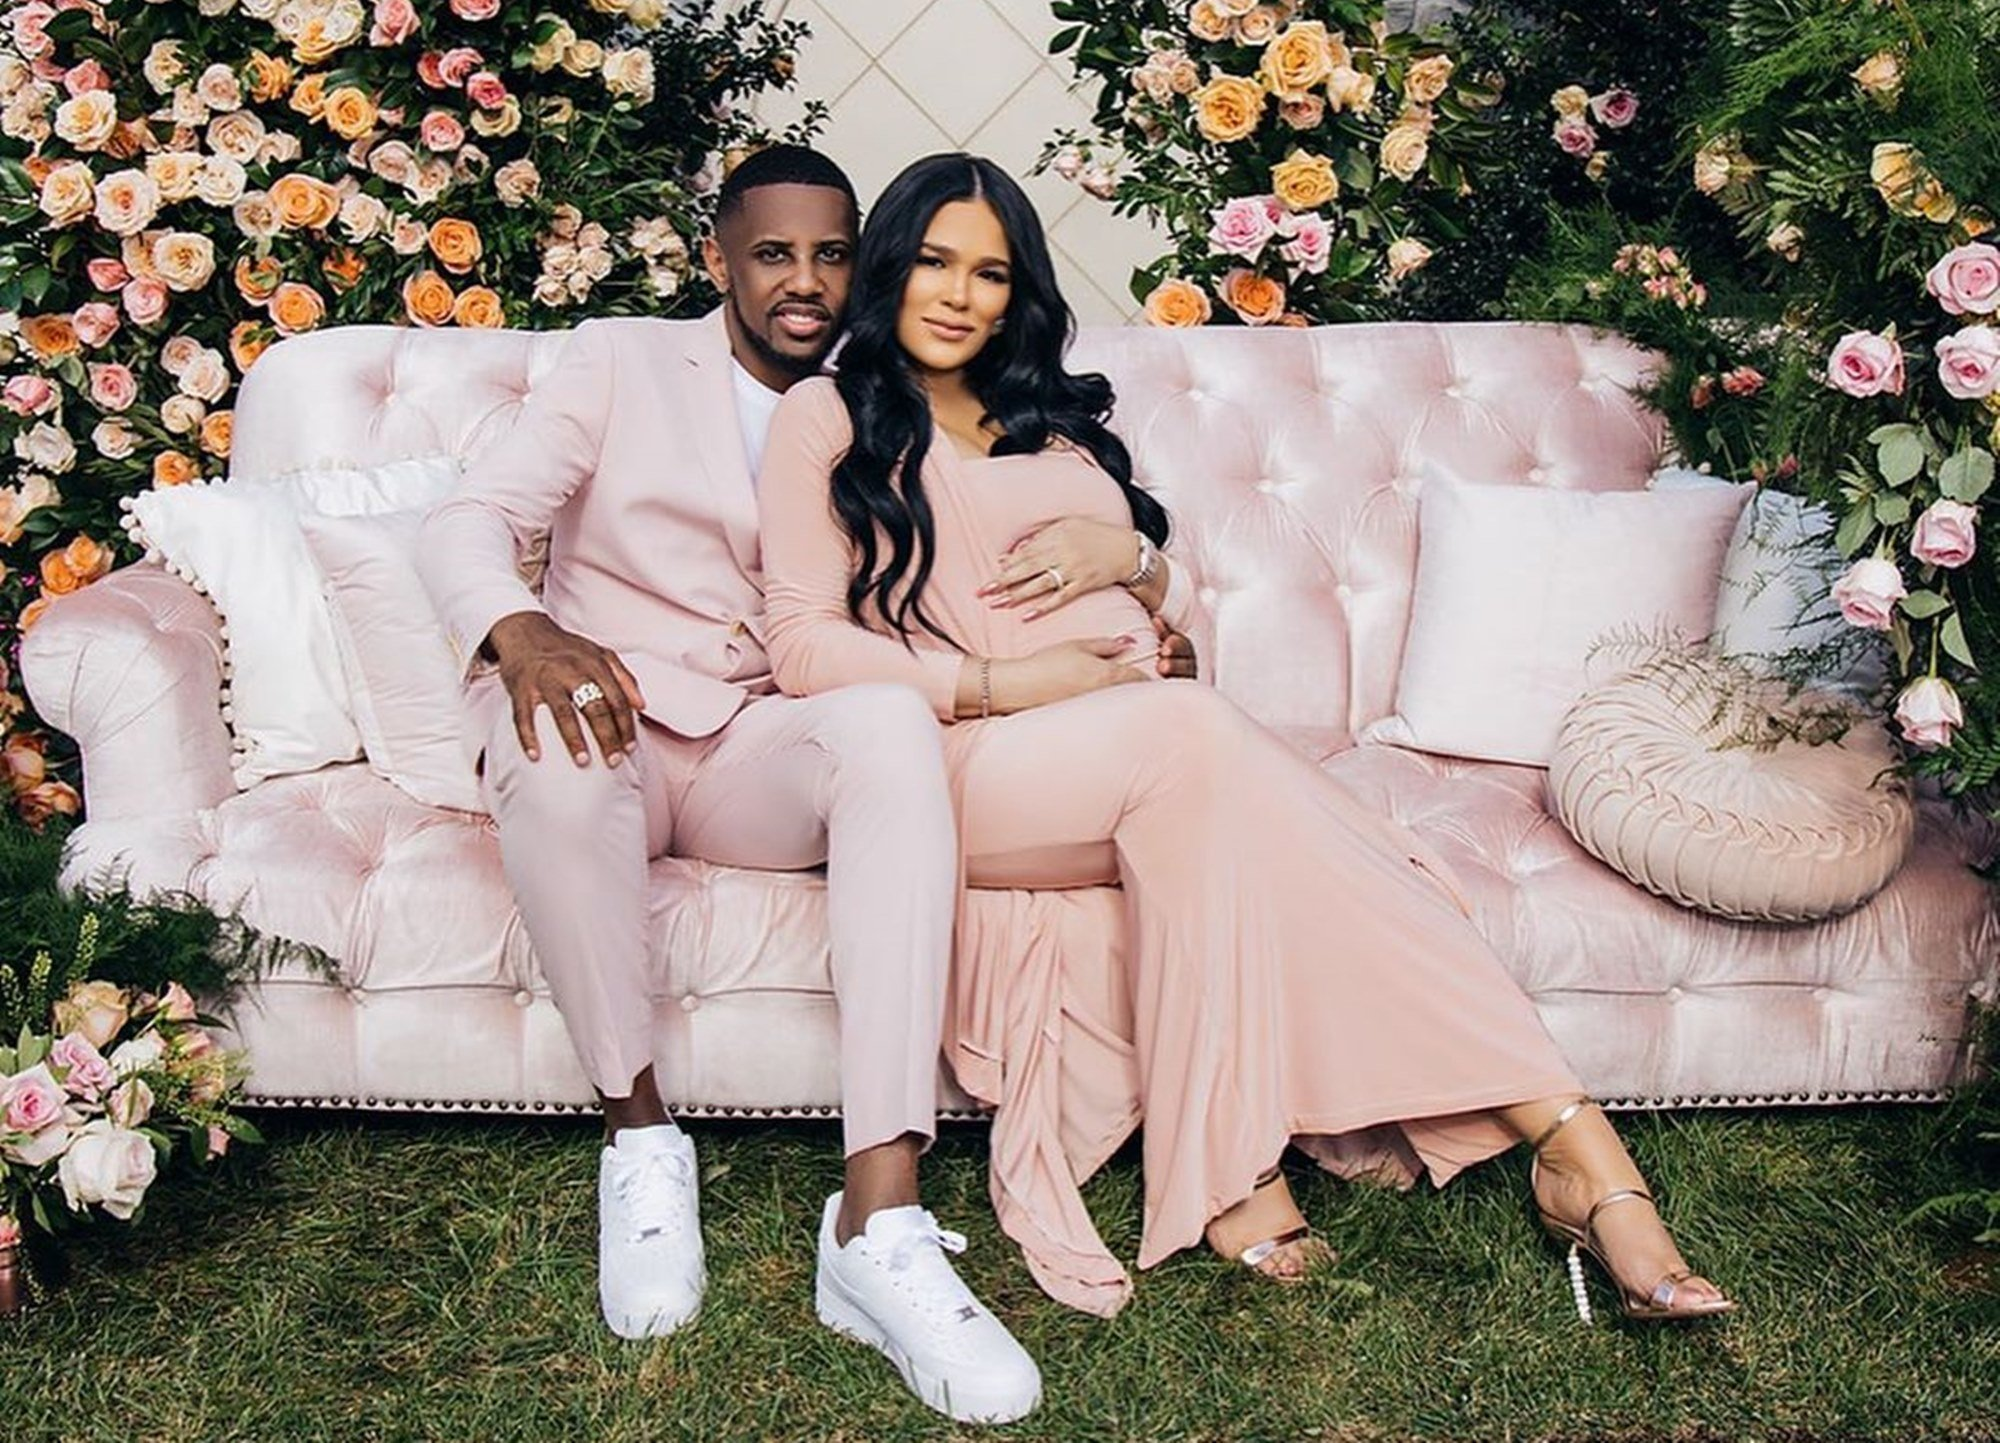 Emily B Looks Fantastic In New Maternity Photos — Some Fans Are Still Not Ready To Forgive Fabolous